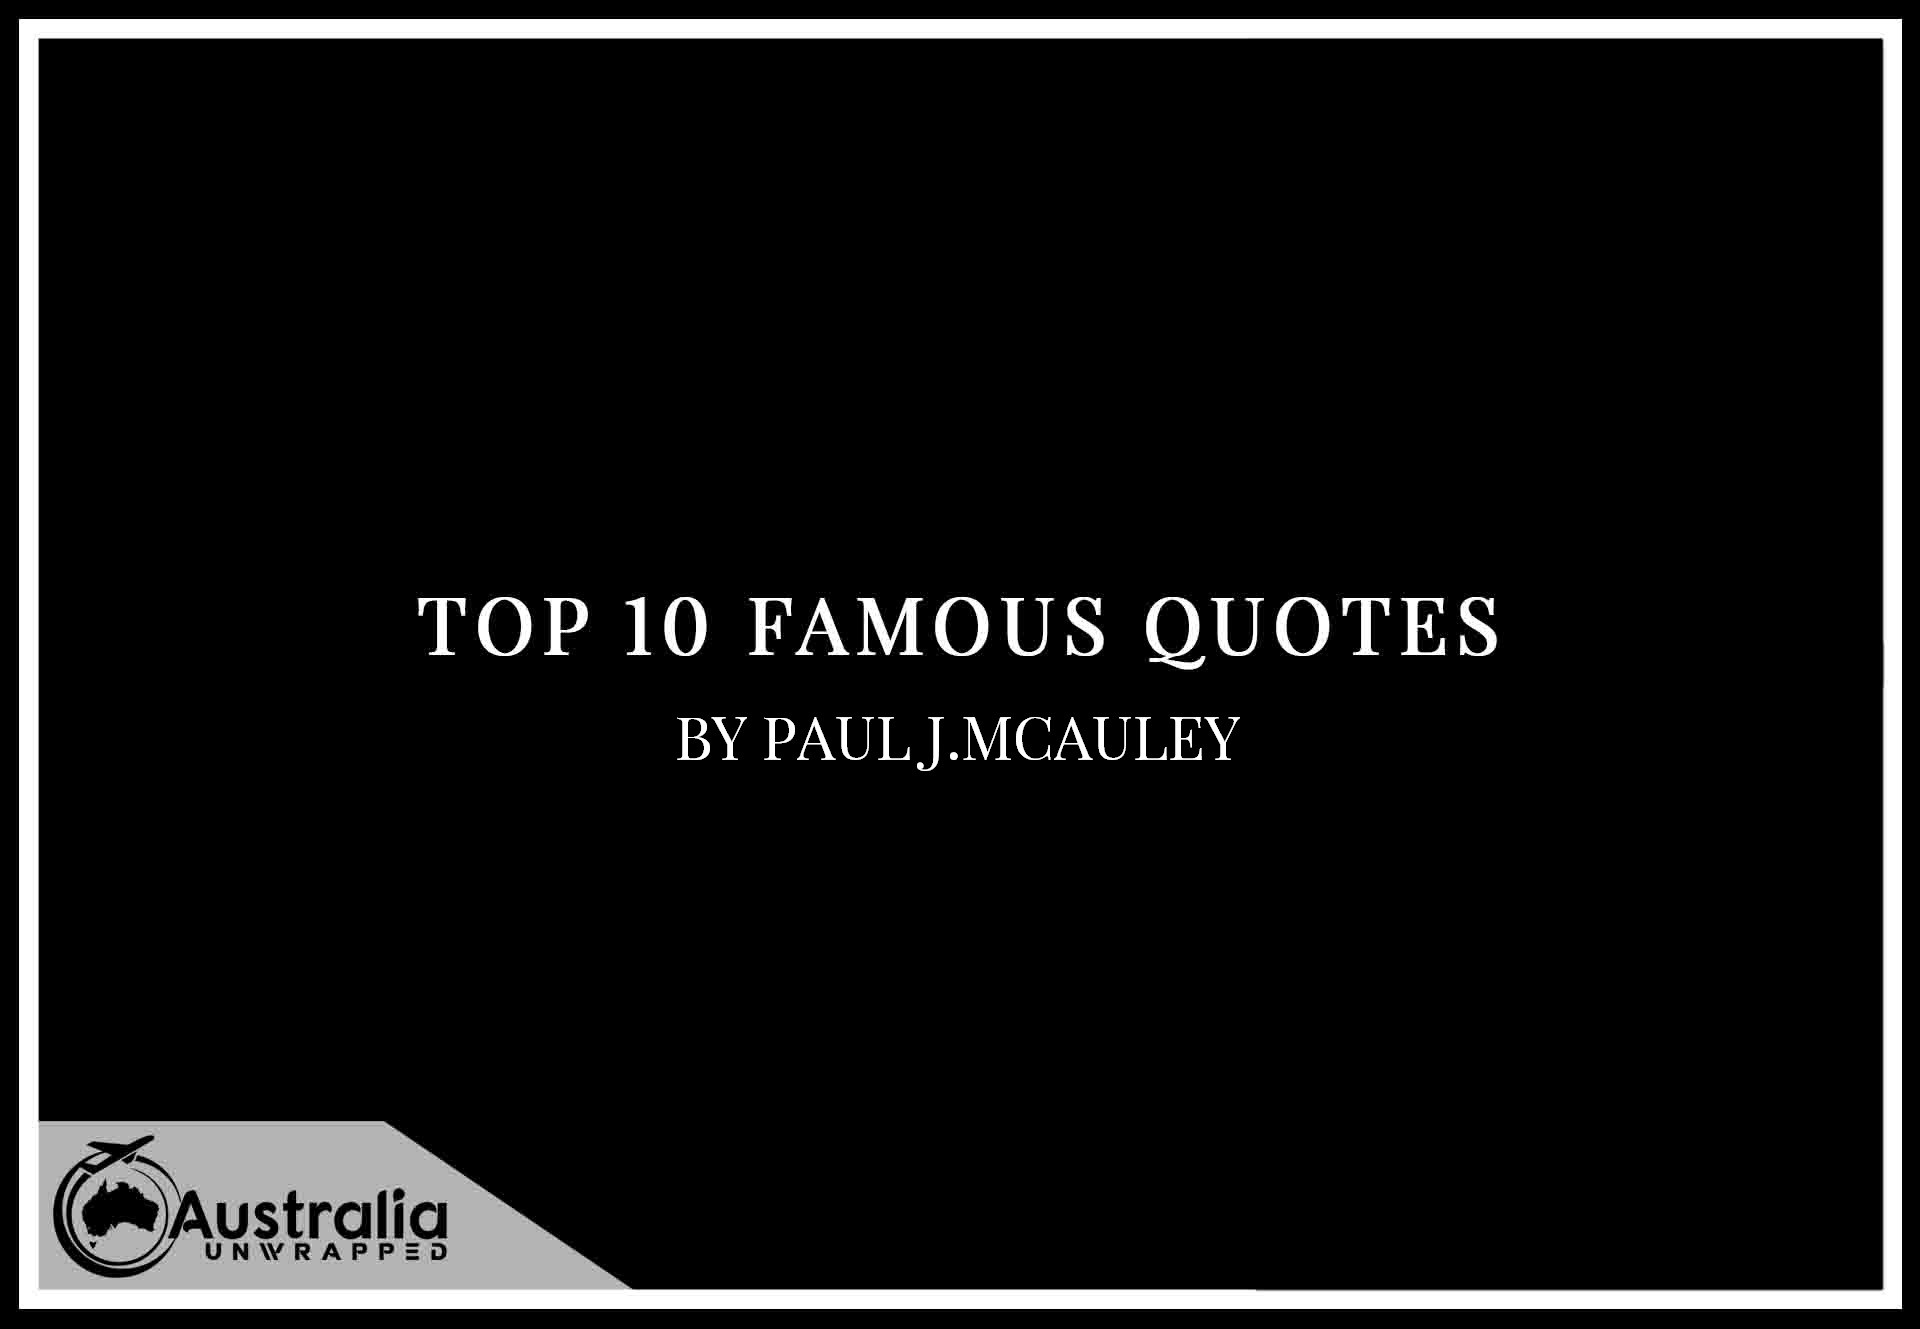 Top 10 Famous Quotes by Author Paul J. McAuley